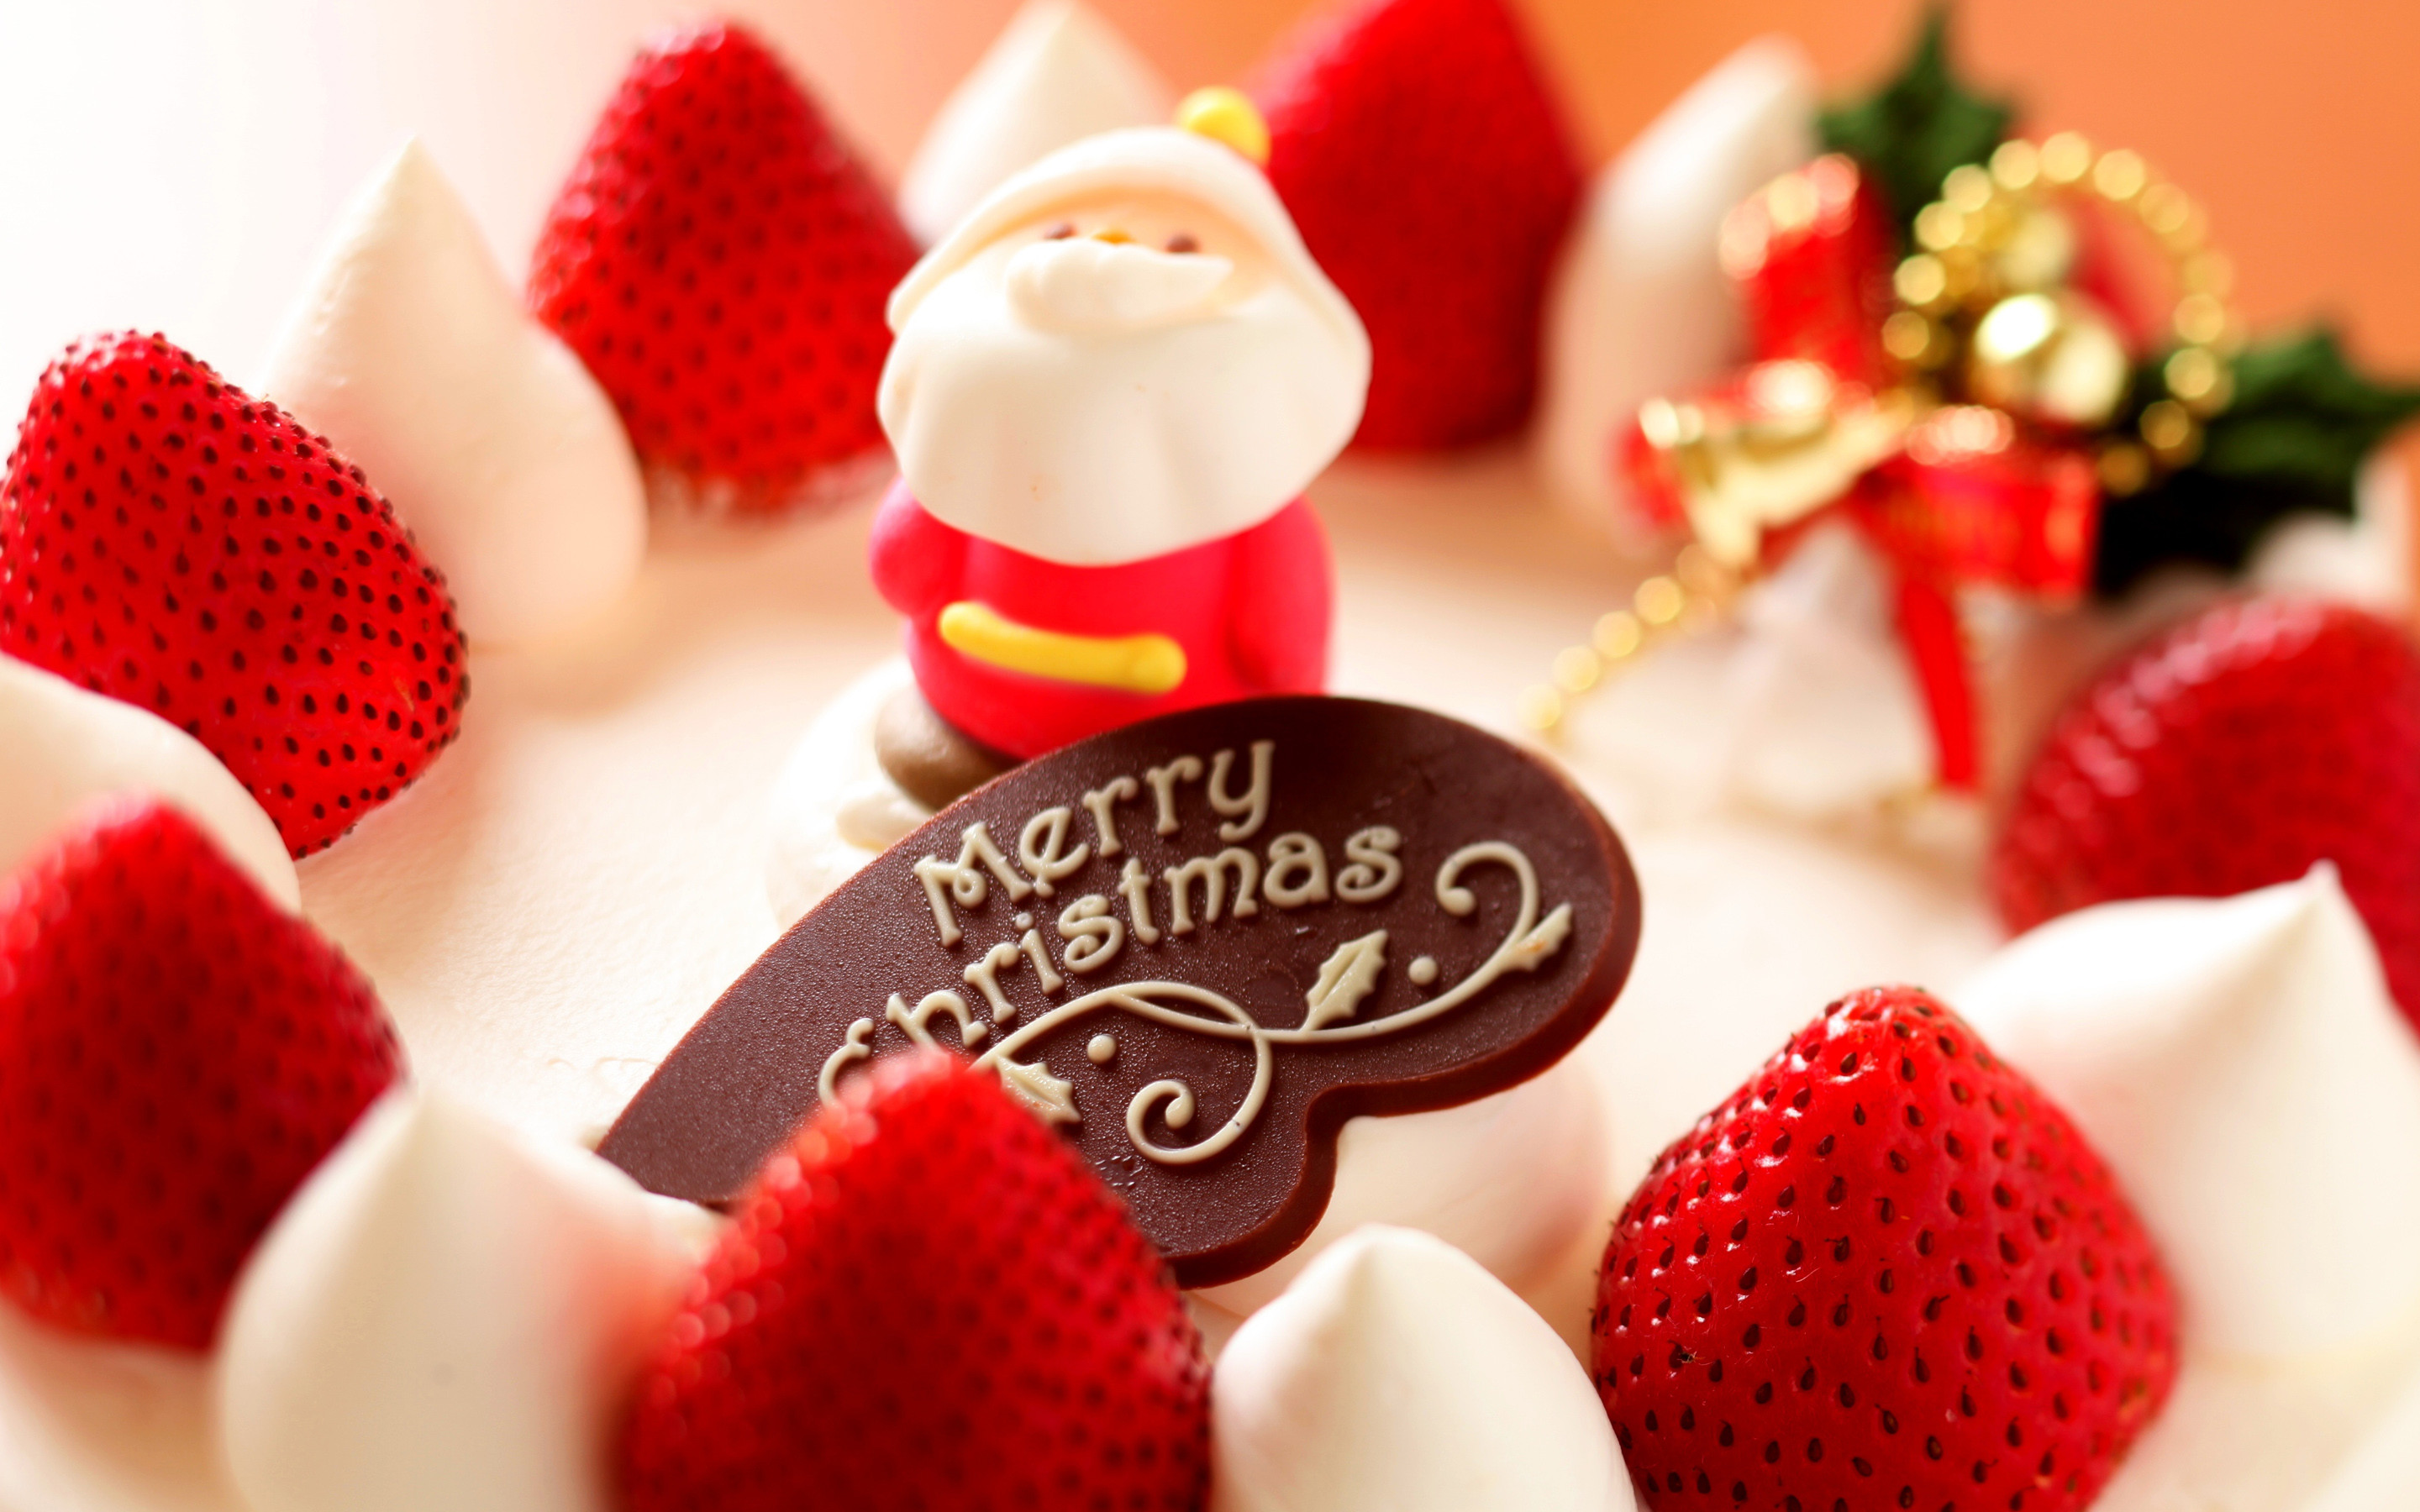 2880x1800 Holiday - Christmas Cake Sweets Santa Strawberry Chocolate Wallpaper